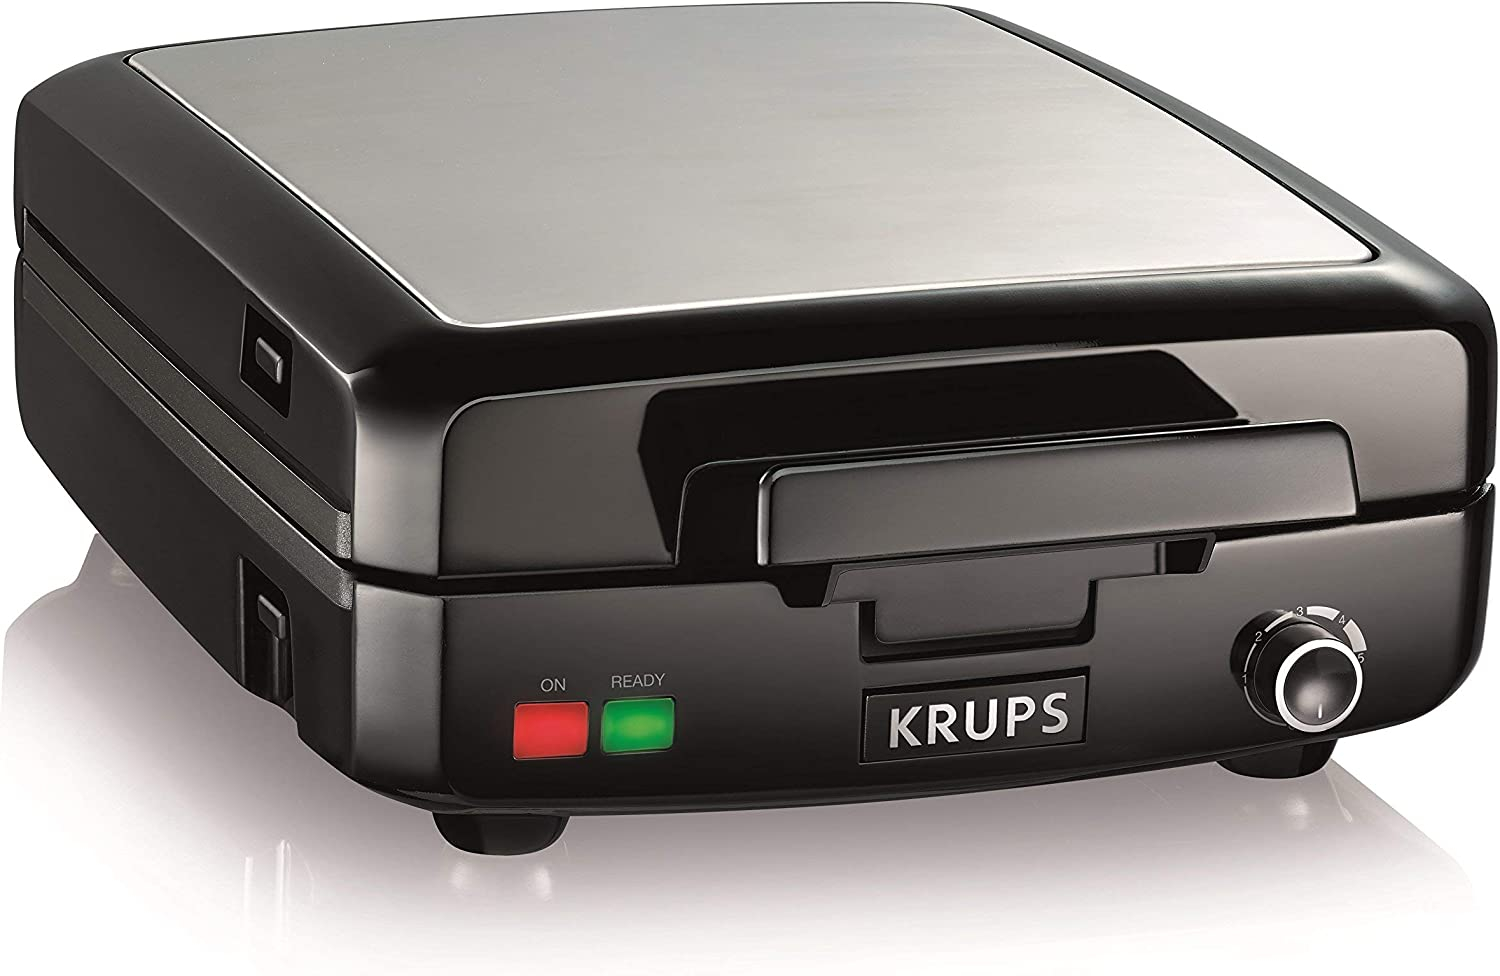 KRUPS Belgian Waffle Maker, Waffle Maker with Removable Plates, 4 Slices, Black and Silver Renewed